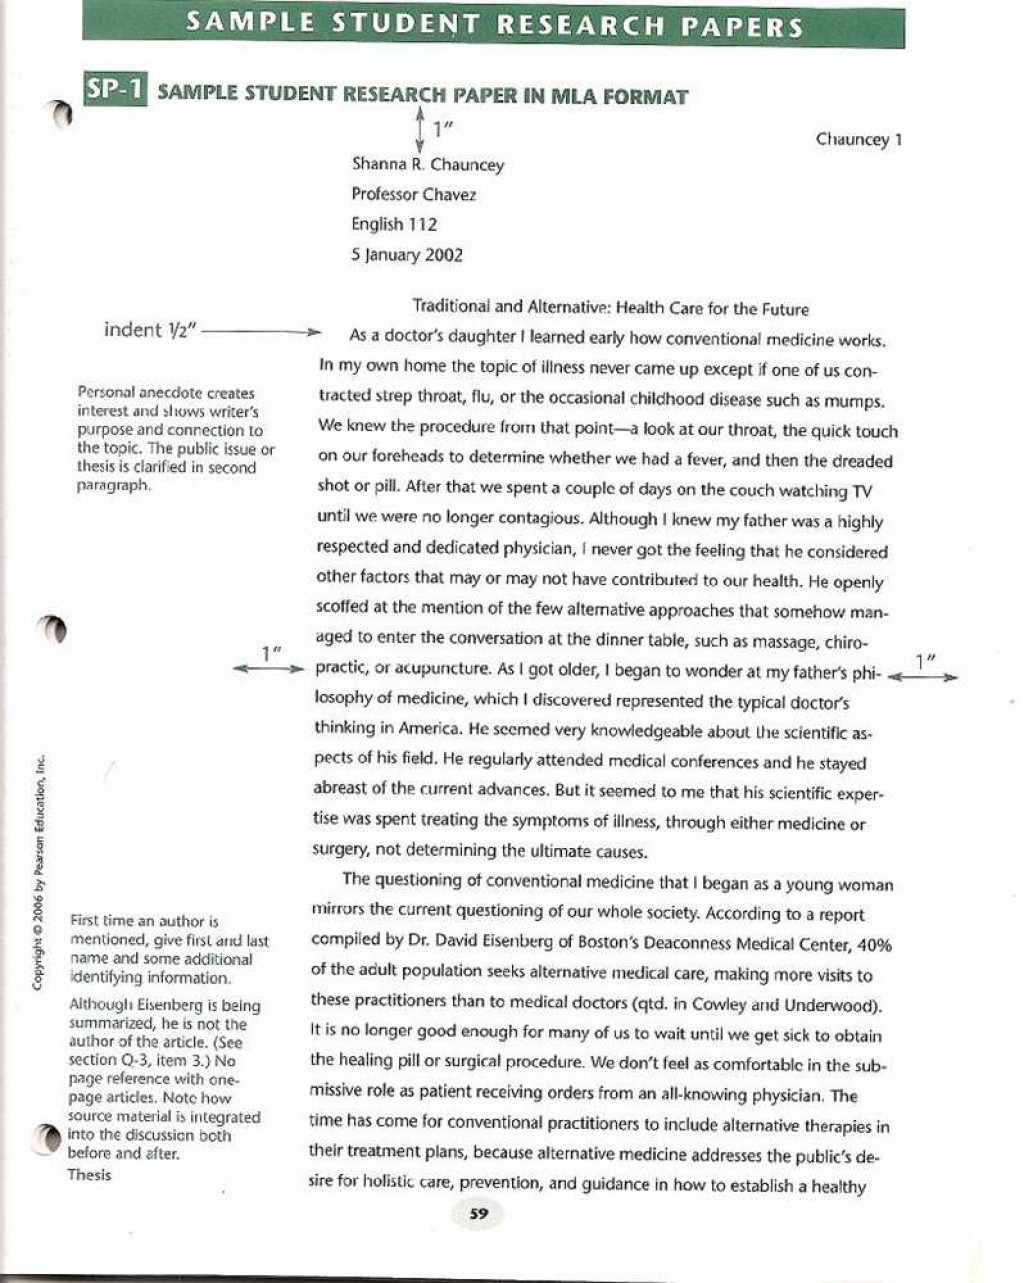 002 Research Paper Religion Free Papers Staggering Online Download Plagiarism Checker For With Works Cited Large